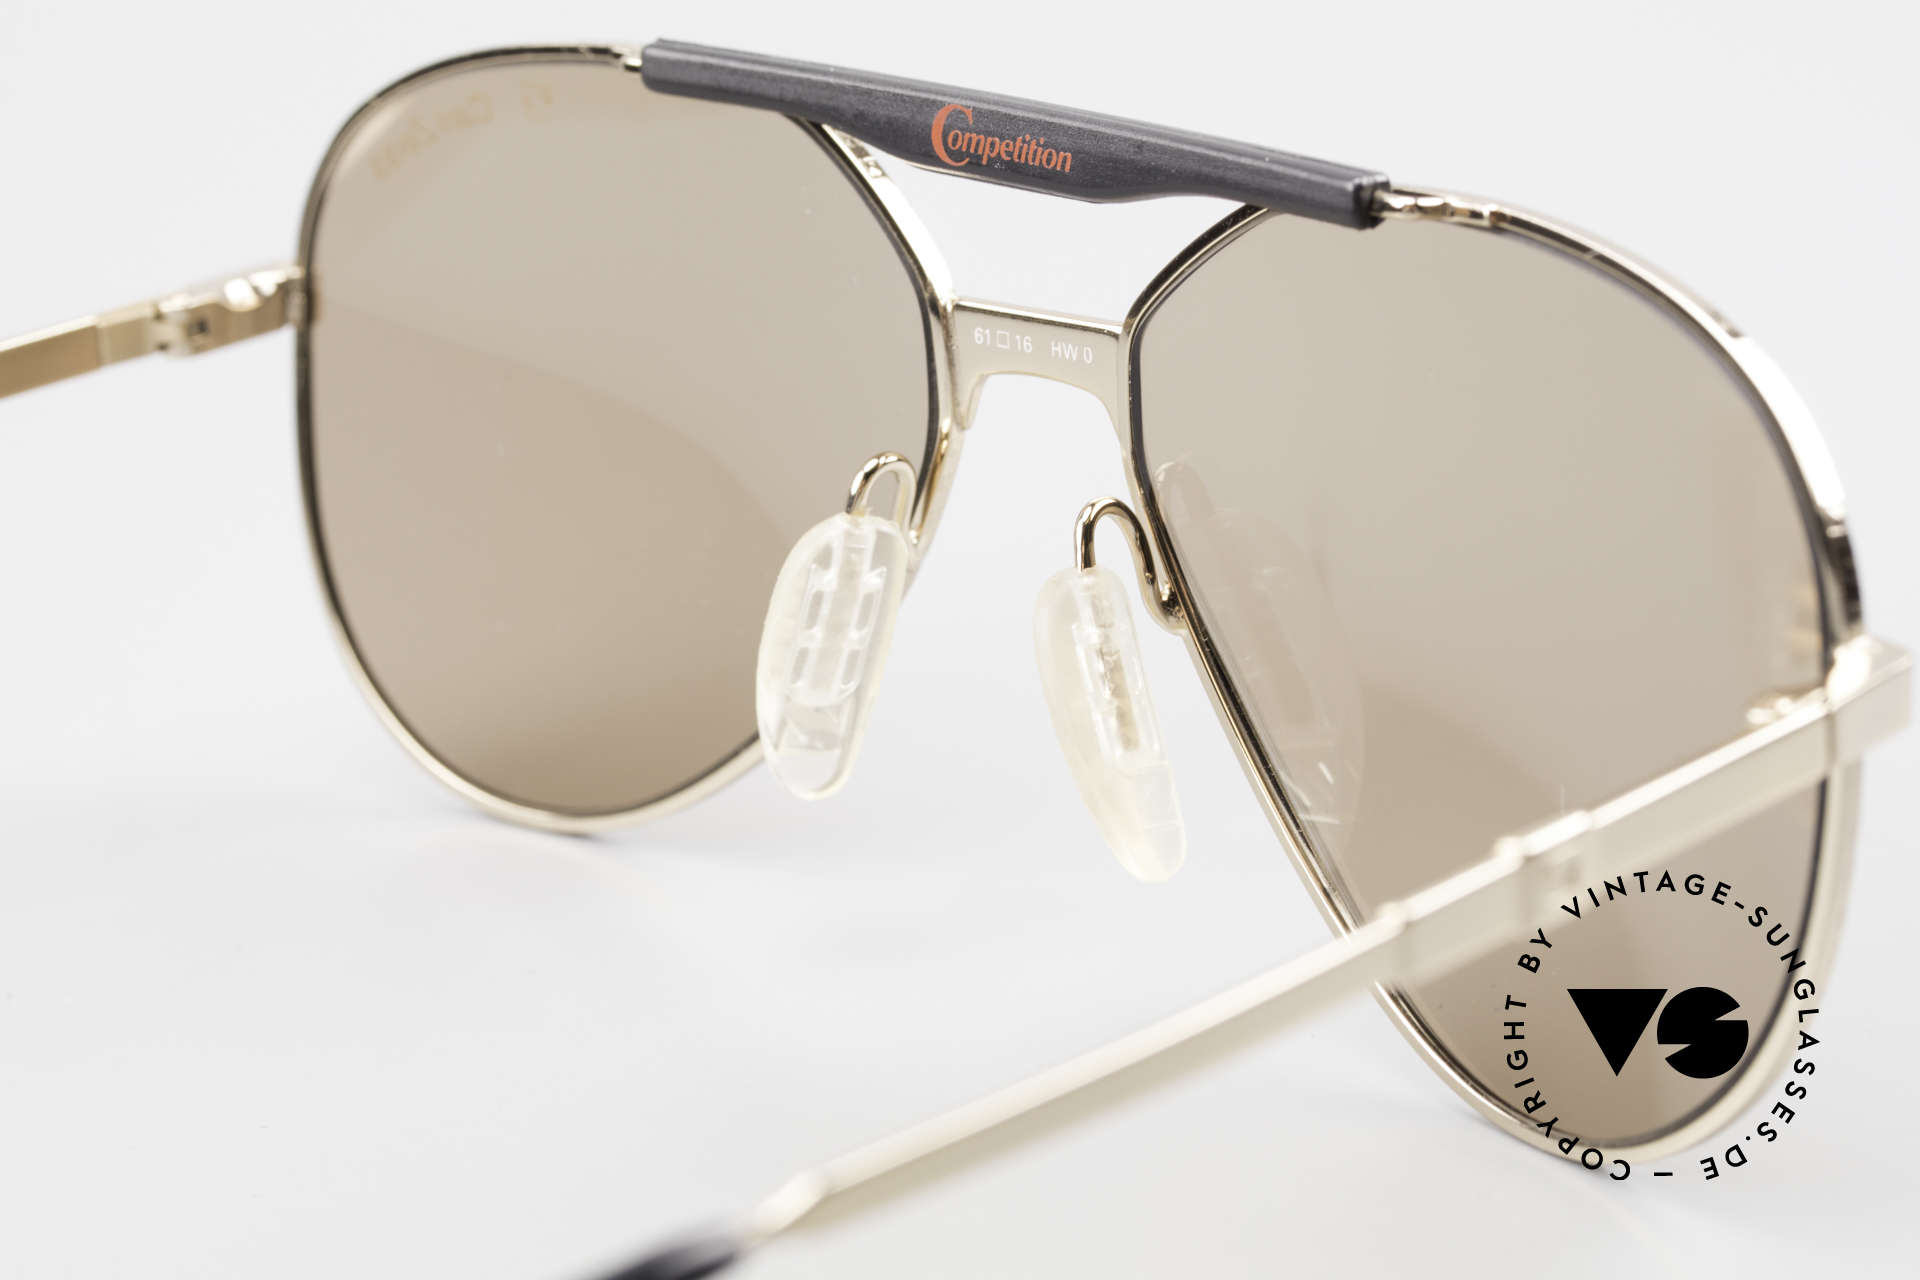 Zeiss 9931 Premium Vintage Sunglasses, never worn (like all our vintage eyewear by ZEISS), Made for Men